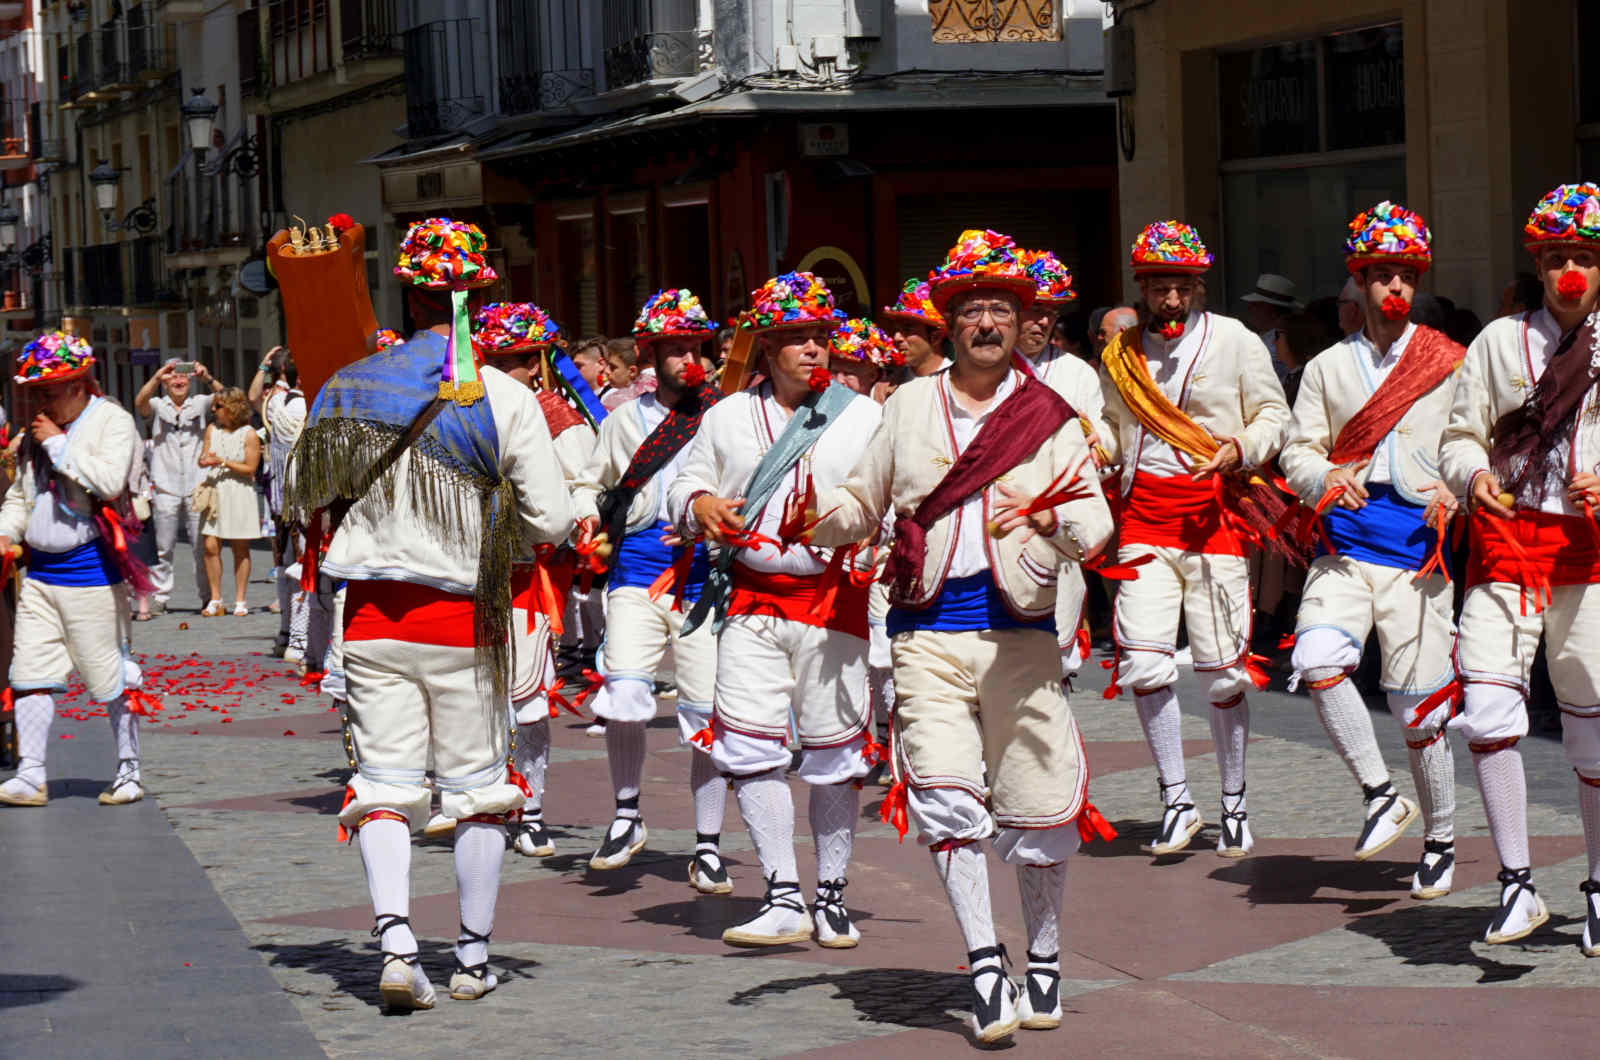 Dancers in traditional costume peform at the festival of Santa Orosia in Jaca on our Cultural Holiday Spain